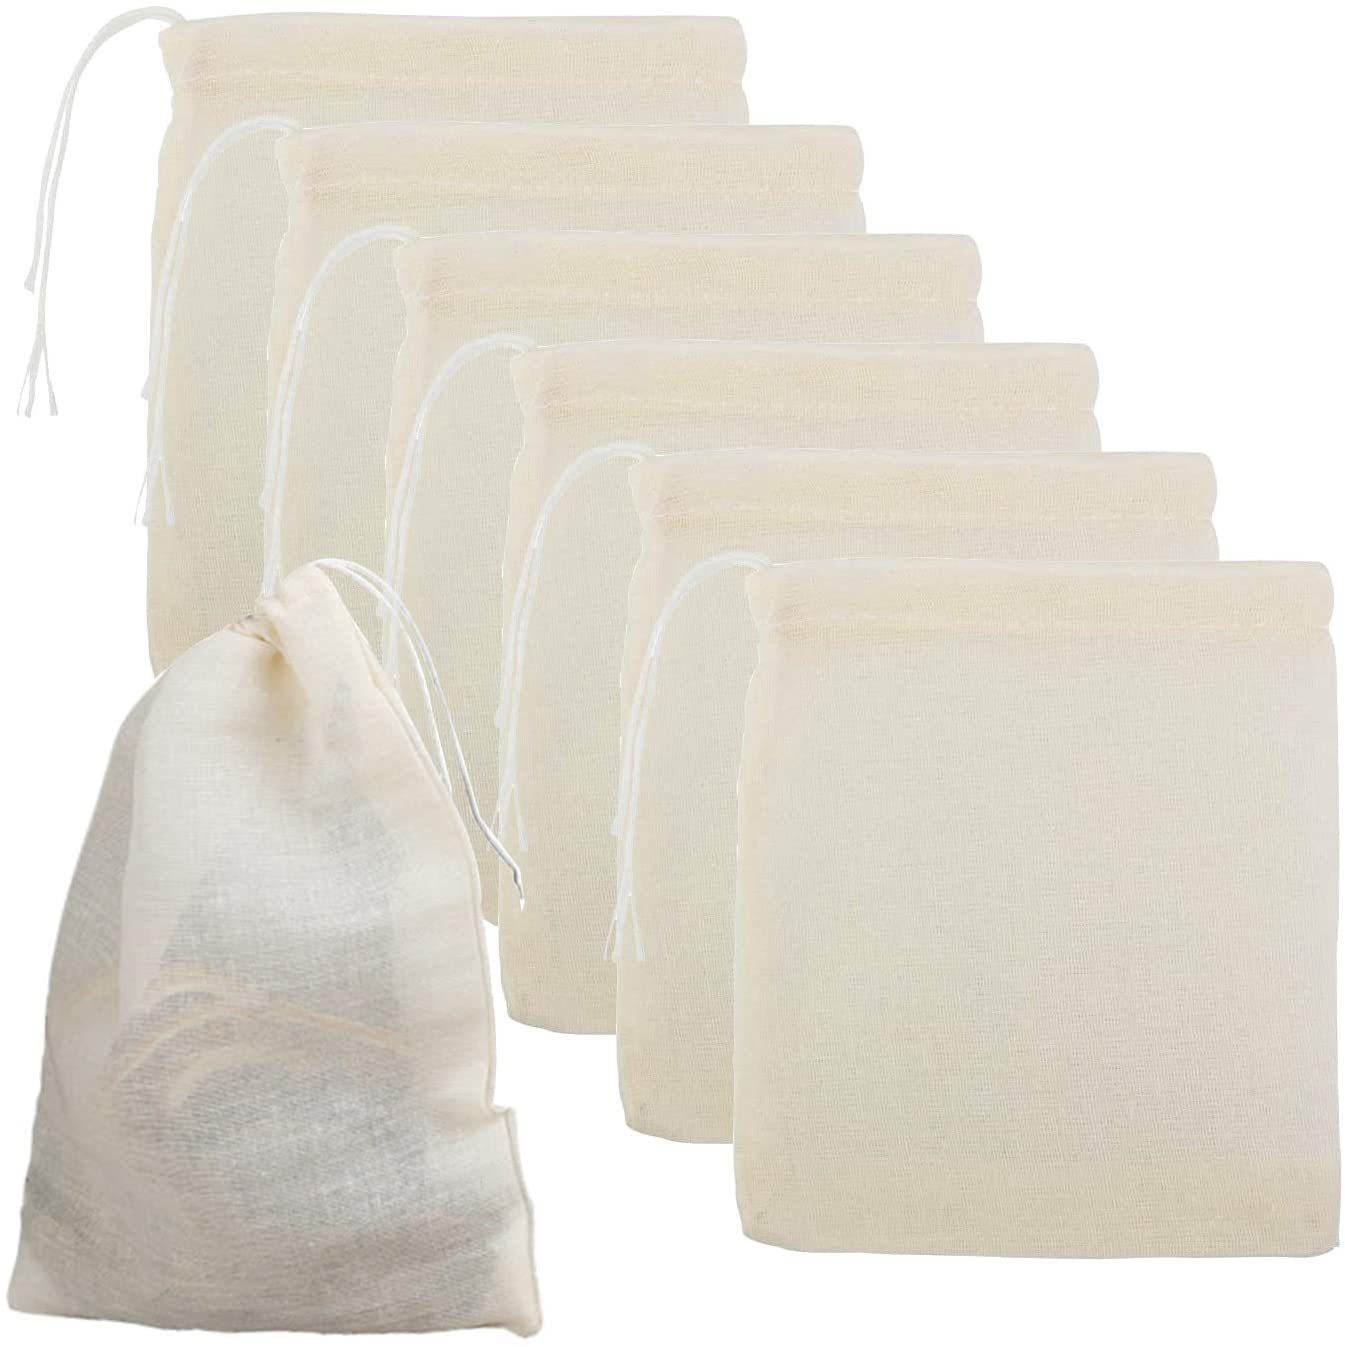 nuoshen 50 Pack Cotton Muslin Drawstring Bags,10 * 8cm 100% Cotton Reusable Mesh Bags Tea Coffee Filter Spices Storage